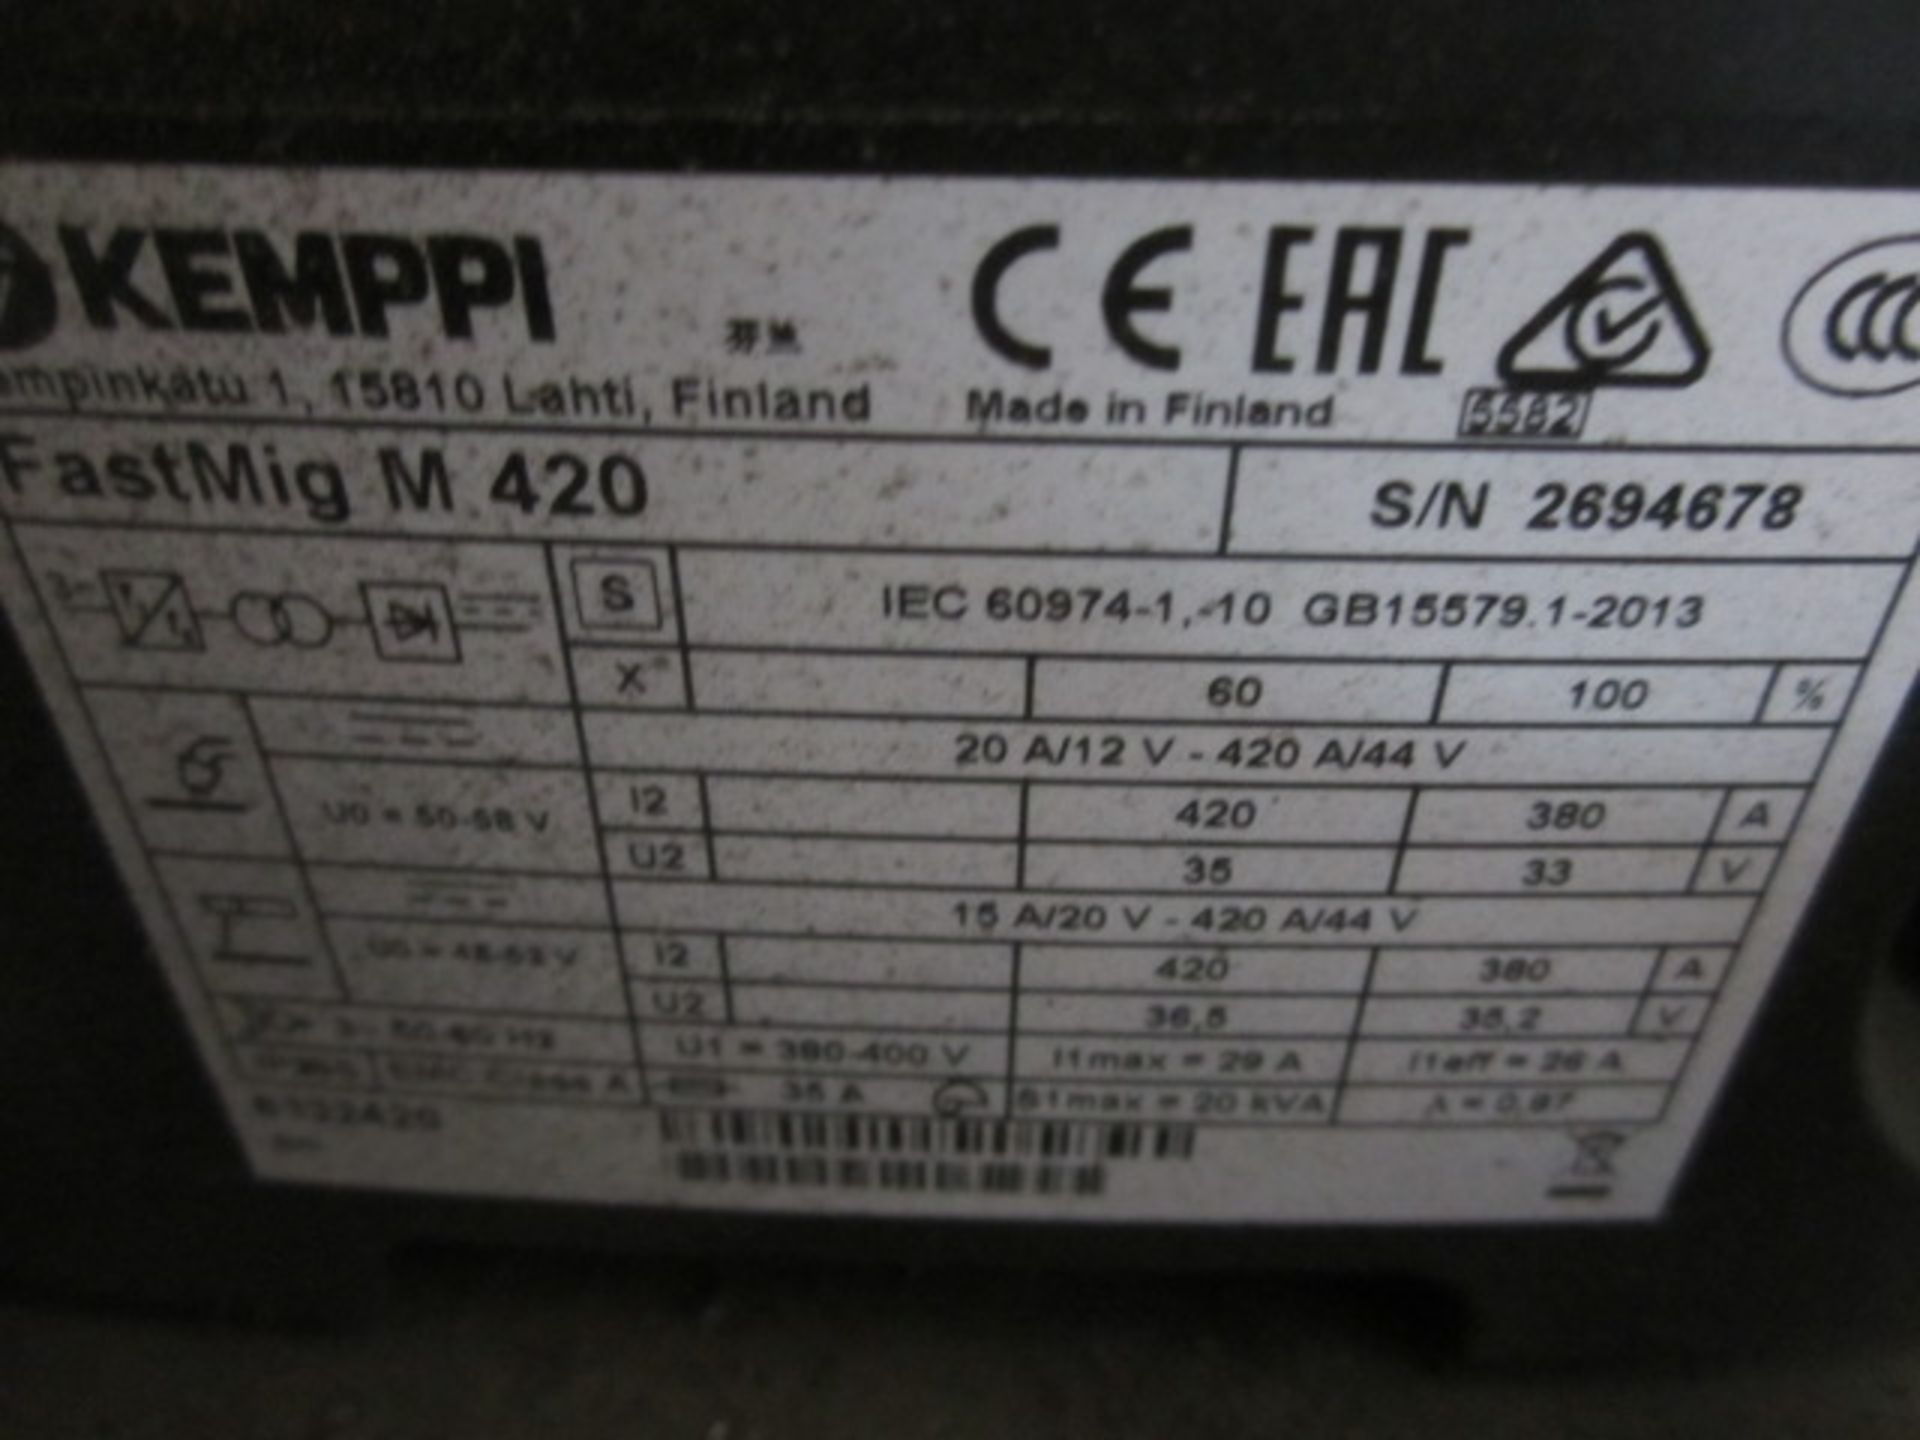 Kemppi Fast Mig M420 mig welder, serial no. 2694678, with Fast Mig MXF65 wire feeder, serial no. - Image 7 of 7